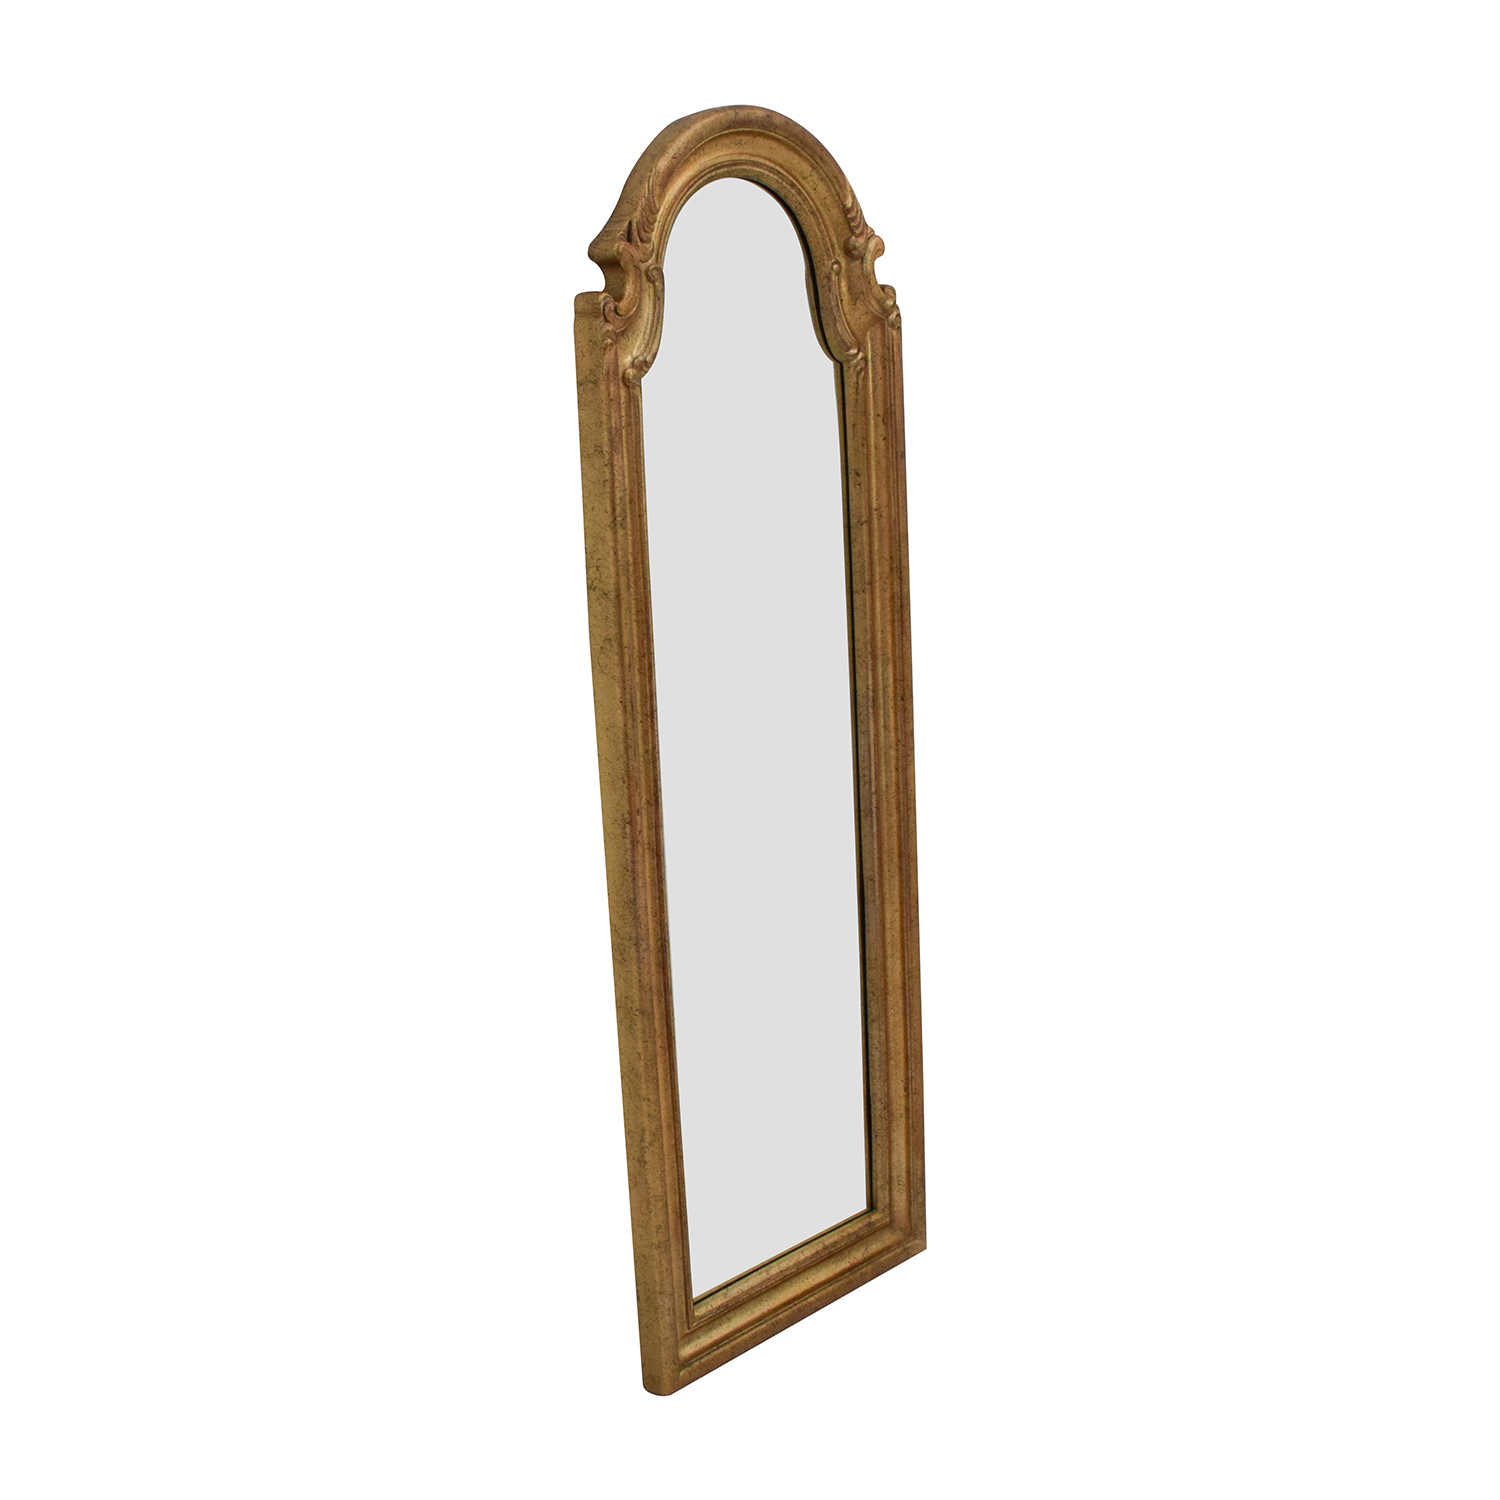 59% Off – Bombay Company Bombay Co Antique Gold Wall Mirror / Decor Regarding Gold Arch Wall Mirrors (View 2 of 30)